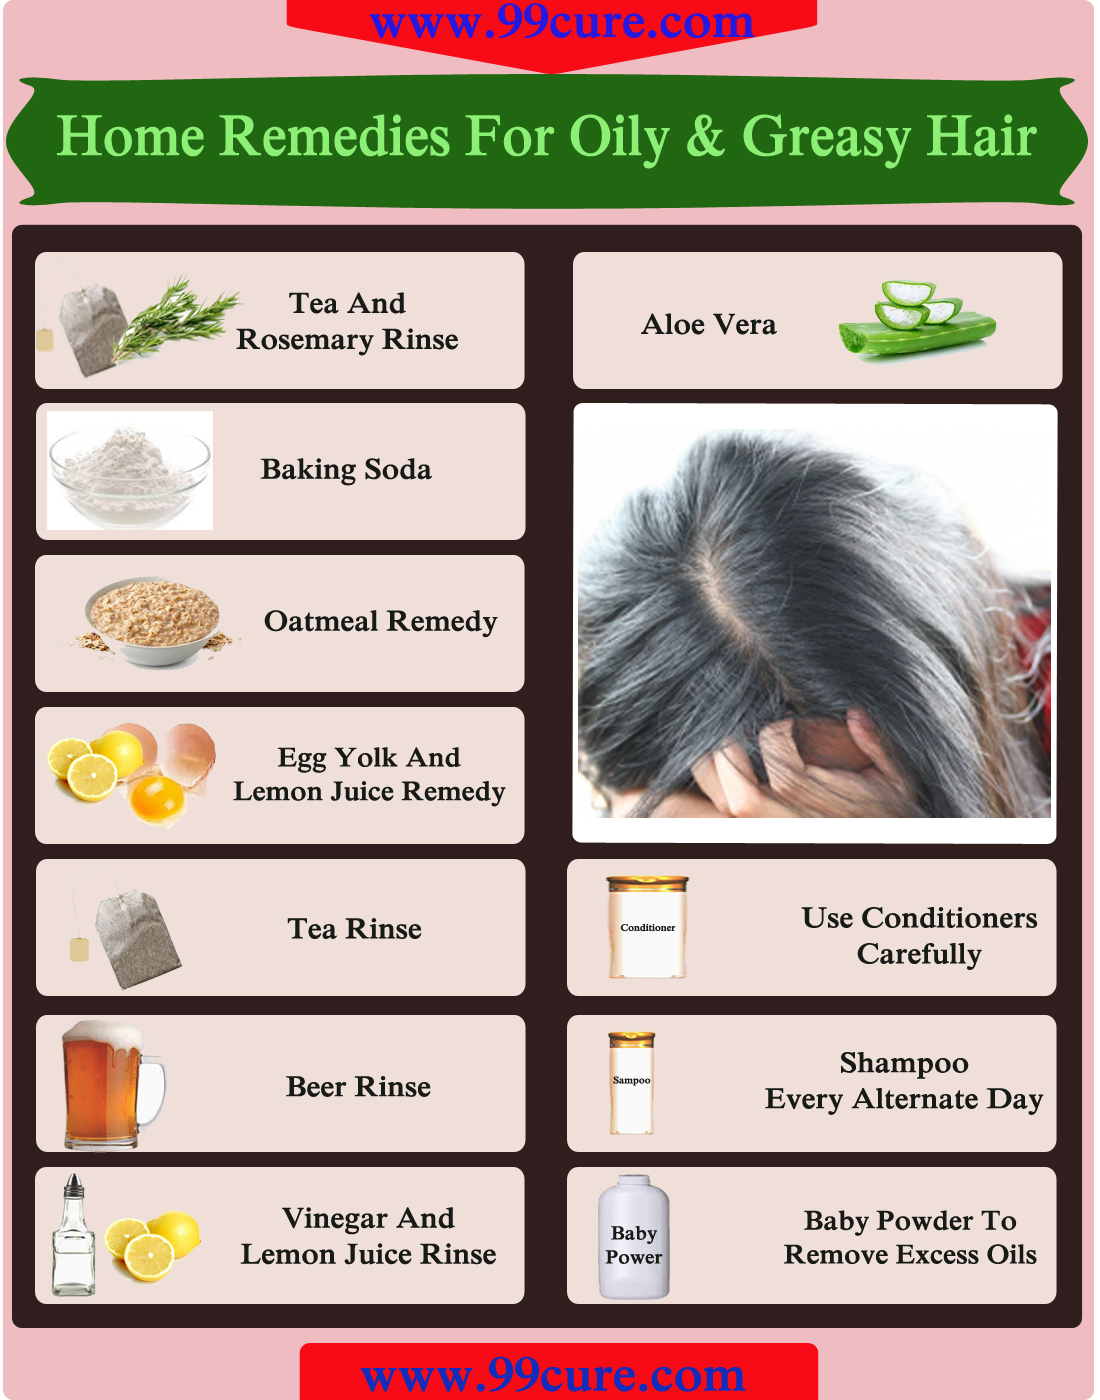 Home Remedies For Oily & Greasy Hair